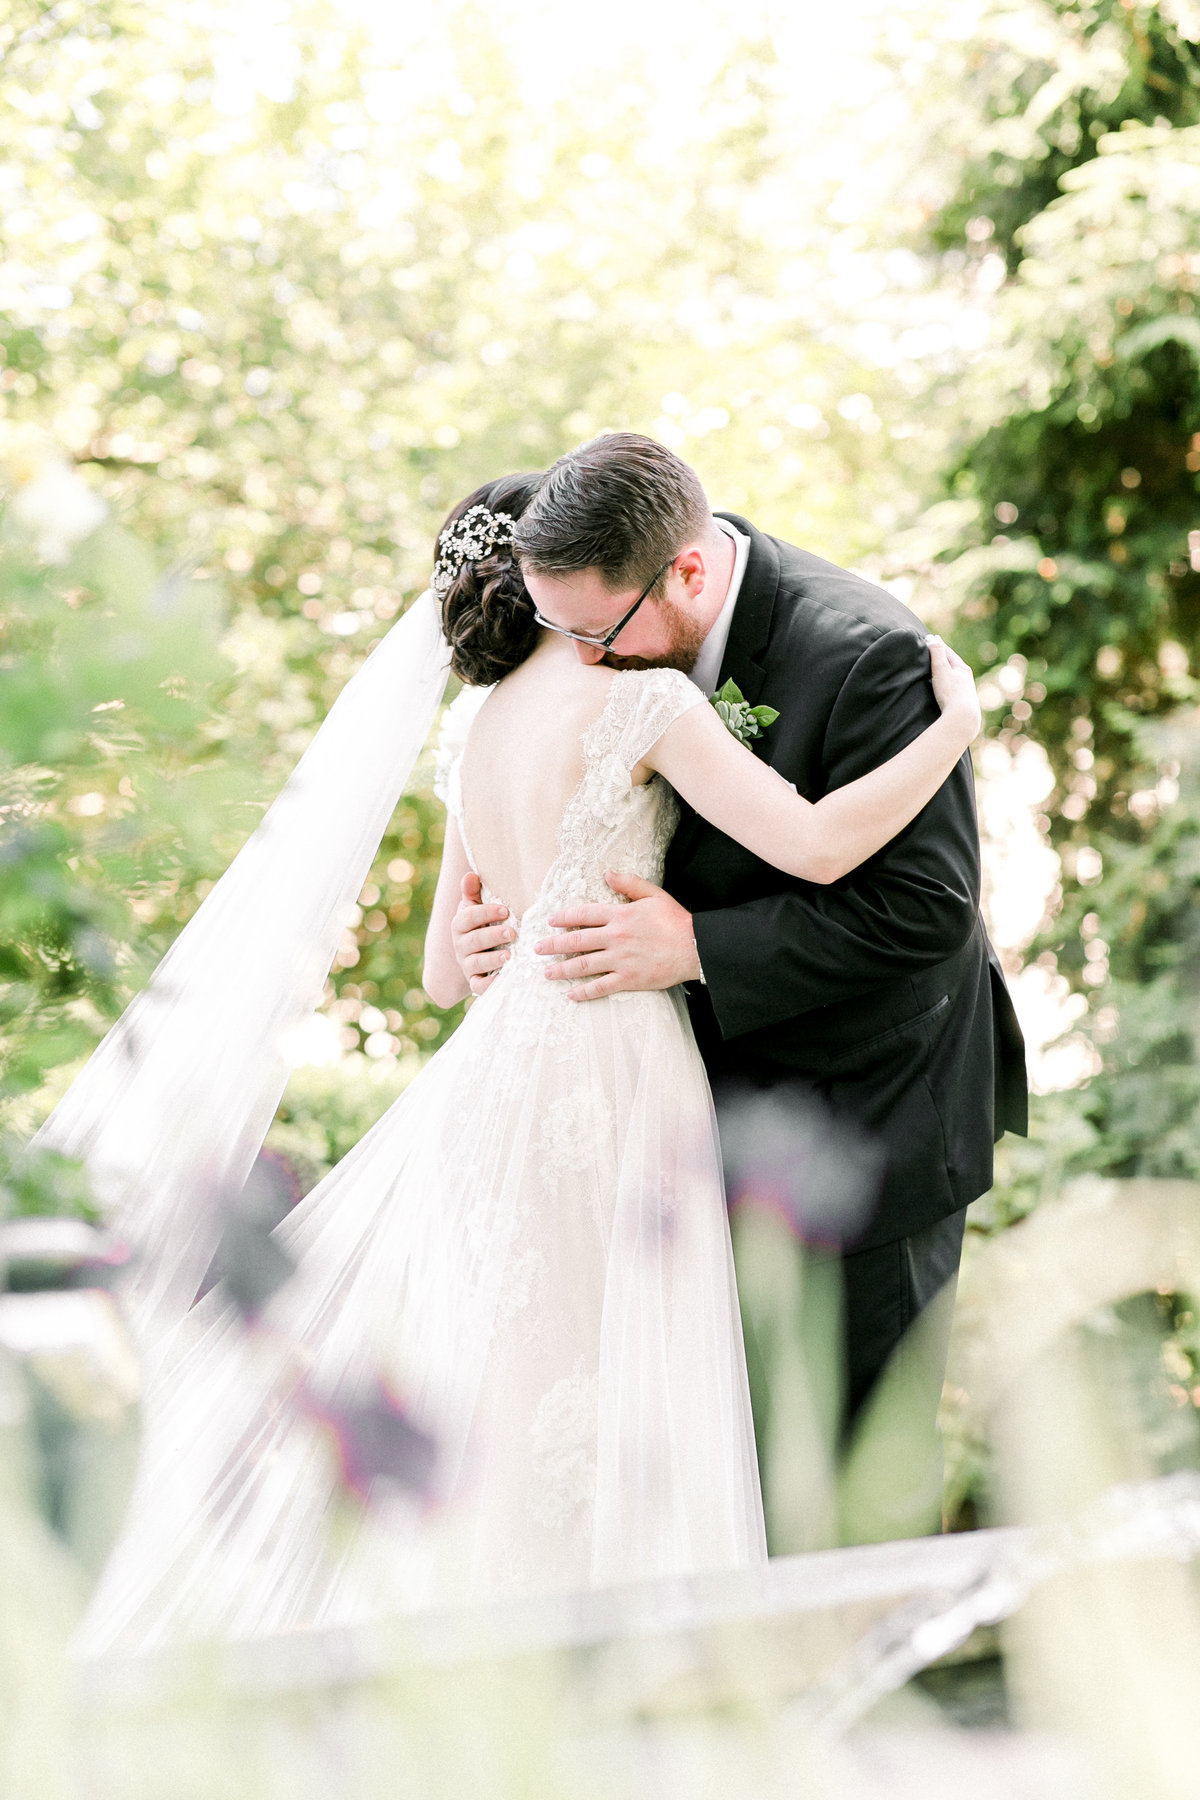 Kate & Jack_Wedding_Bride & Groom_1075